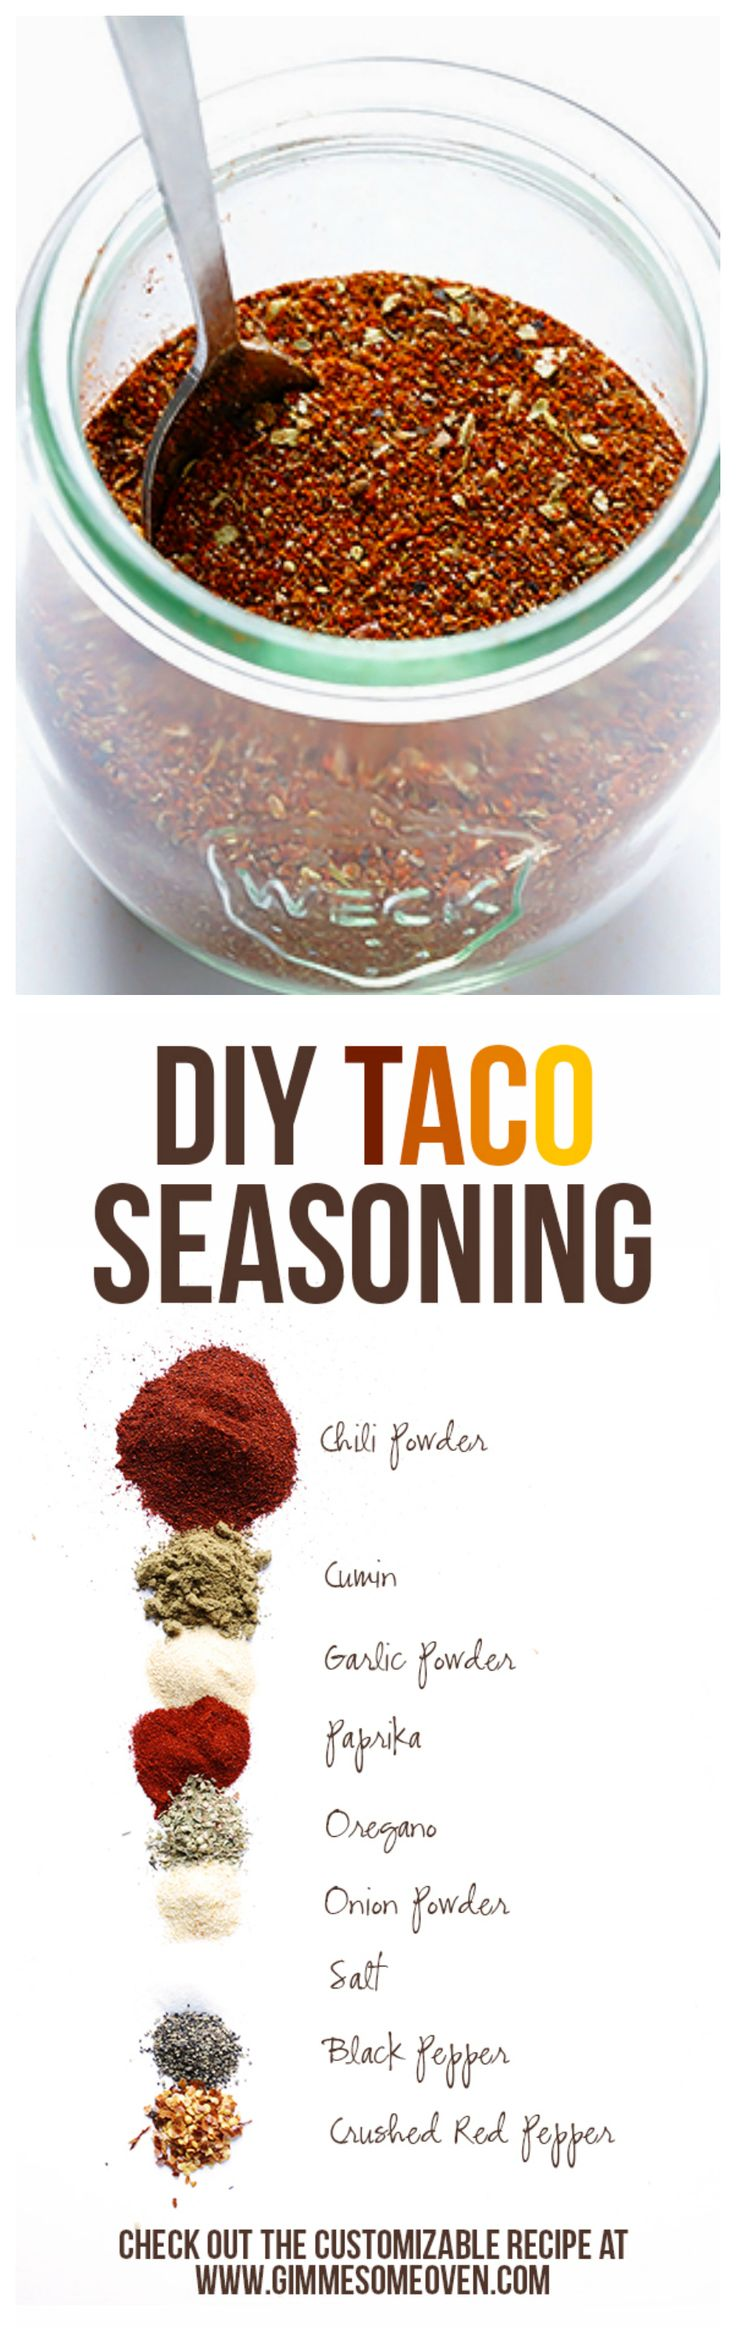 This homemade taco seasoning recipe can be made in minutes. And it's also preservative-free gluten-free and easily customizable. So much better than storebought taco seasoning mix!